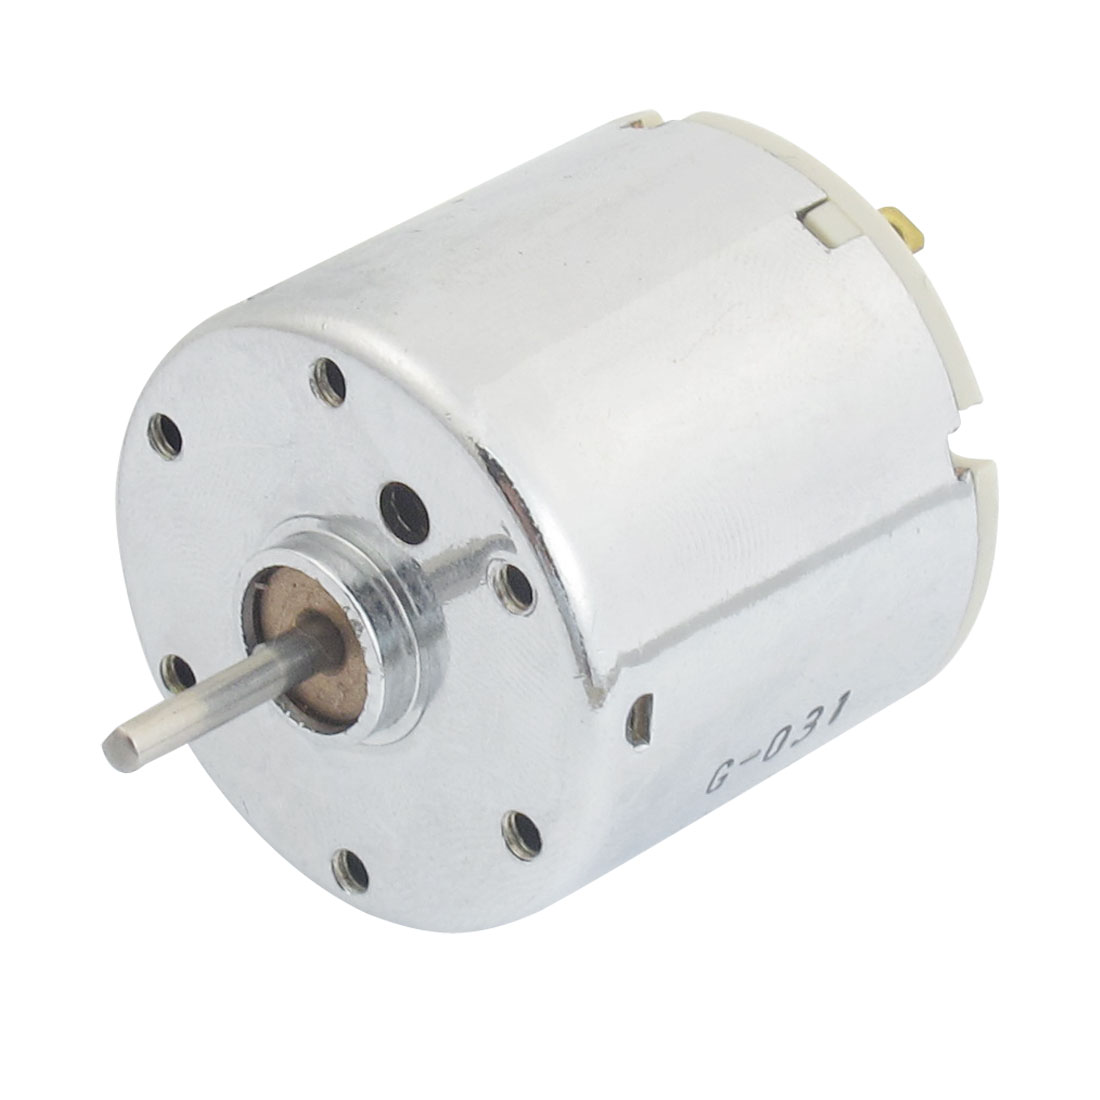 5000RPM-12V-0-035A-DC-Double-Shaft-Mini-Motor-for-DIY-Toys-Hobby